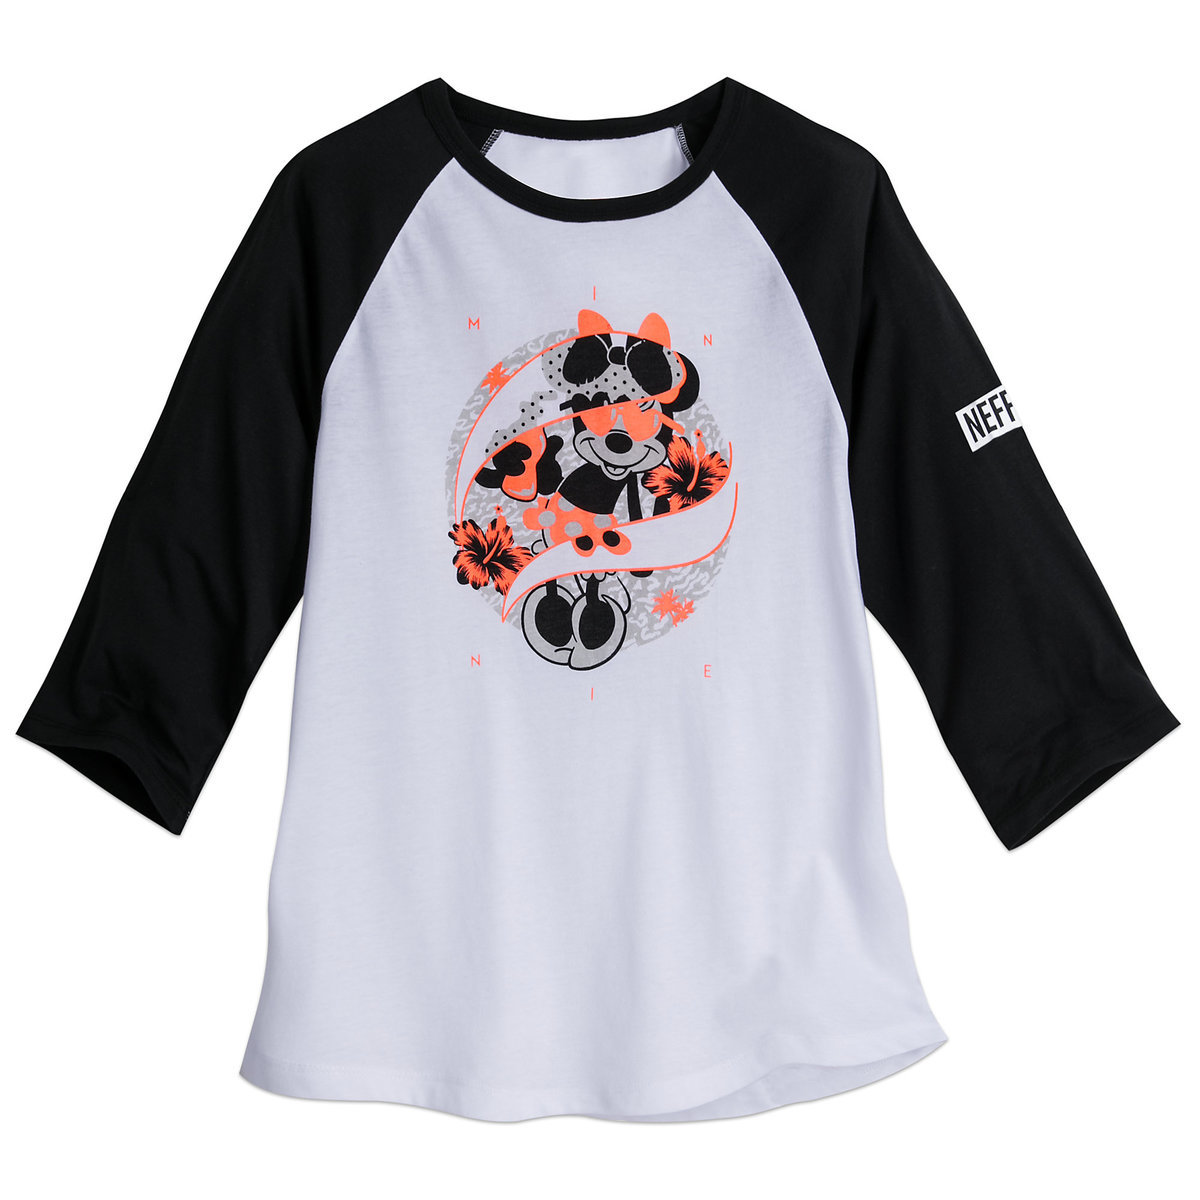 a4a2e97b0dec7a Product Image of Minnie Mouse Raglan T-Shirt for Women by Neff   1